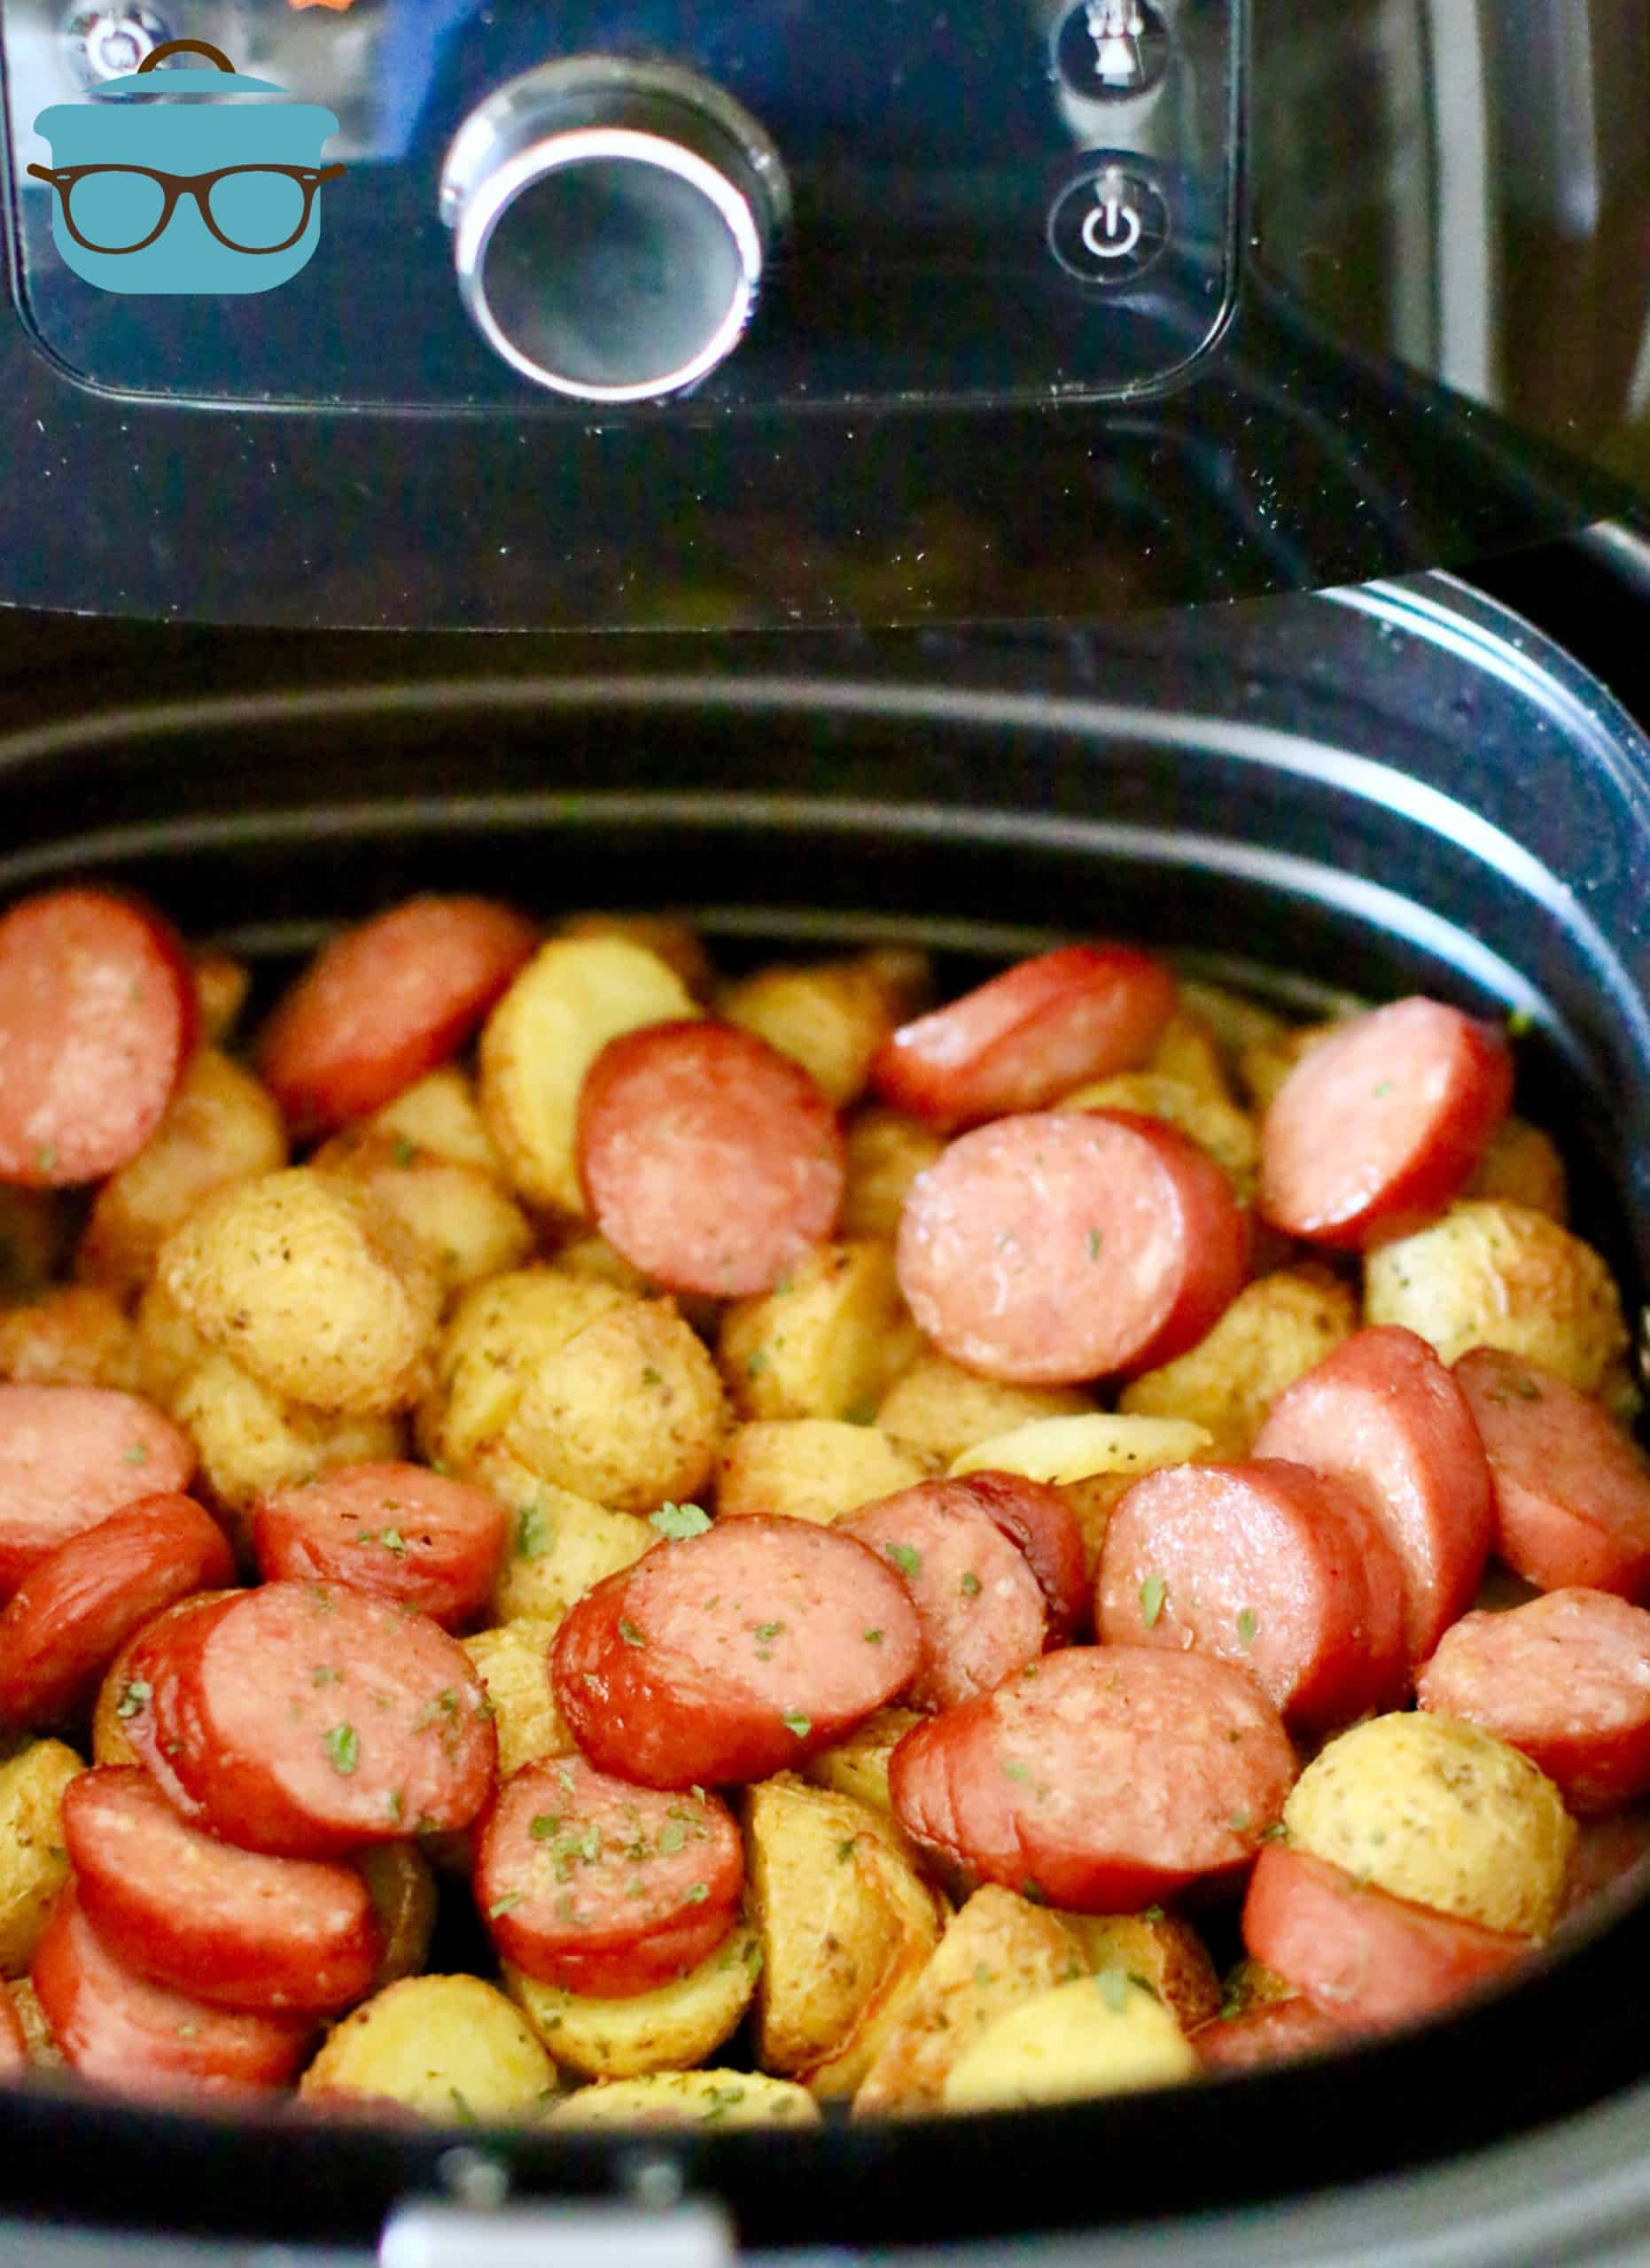 finished, air fried potatoes, onions and smoked sausage shown in the air fryer basket.